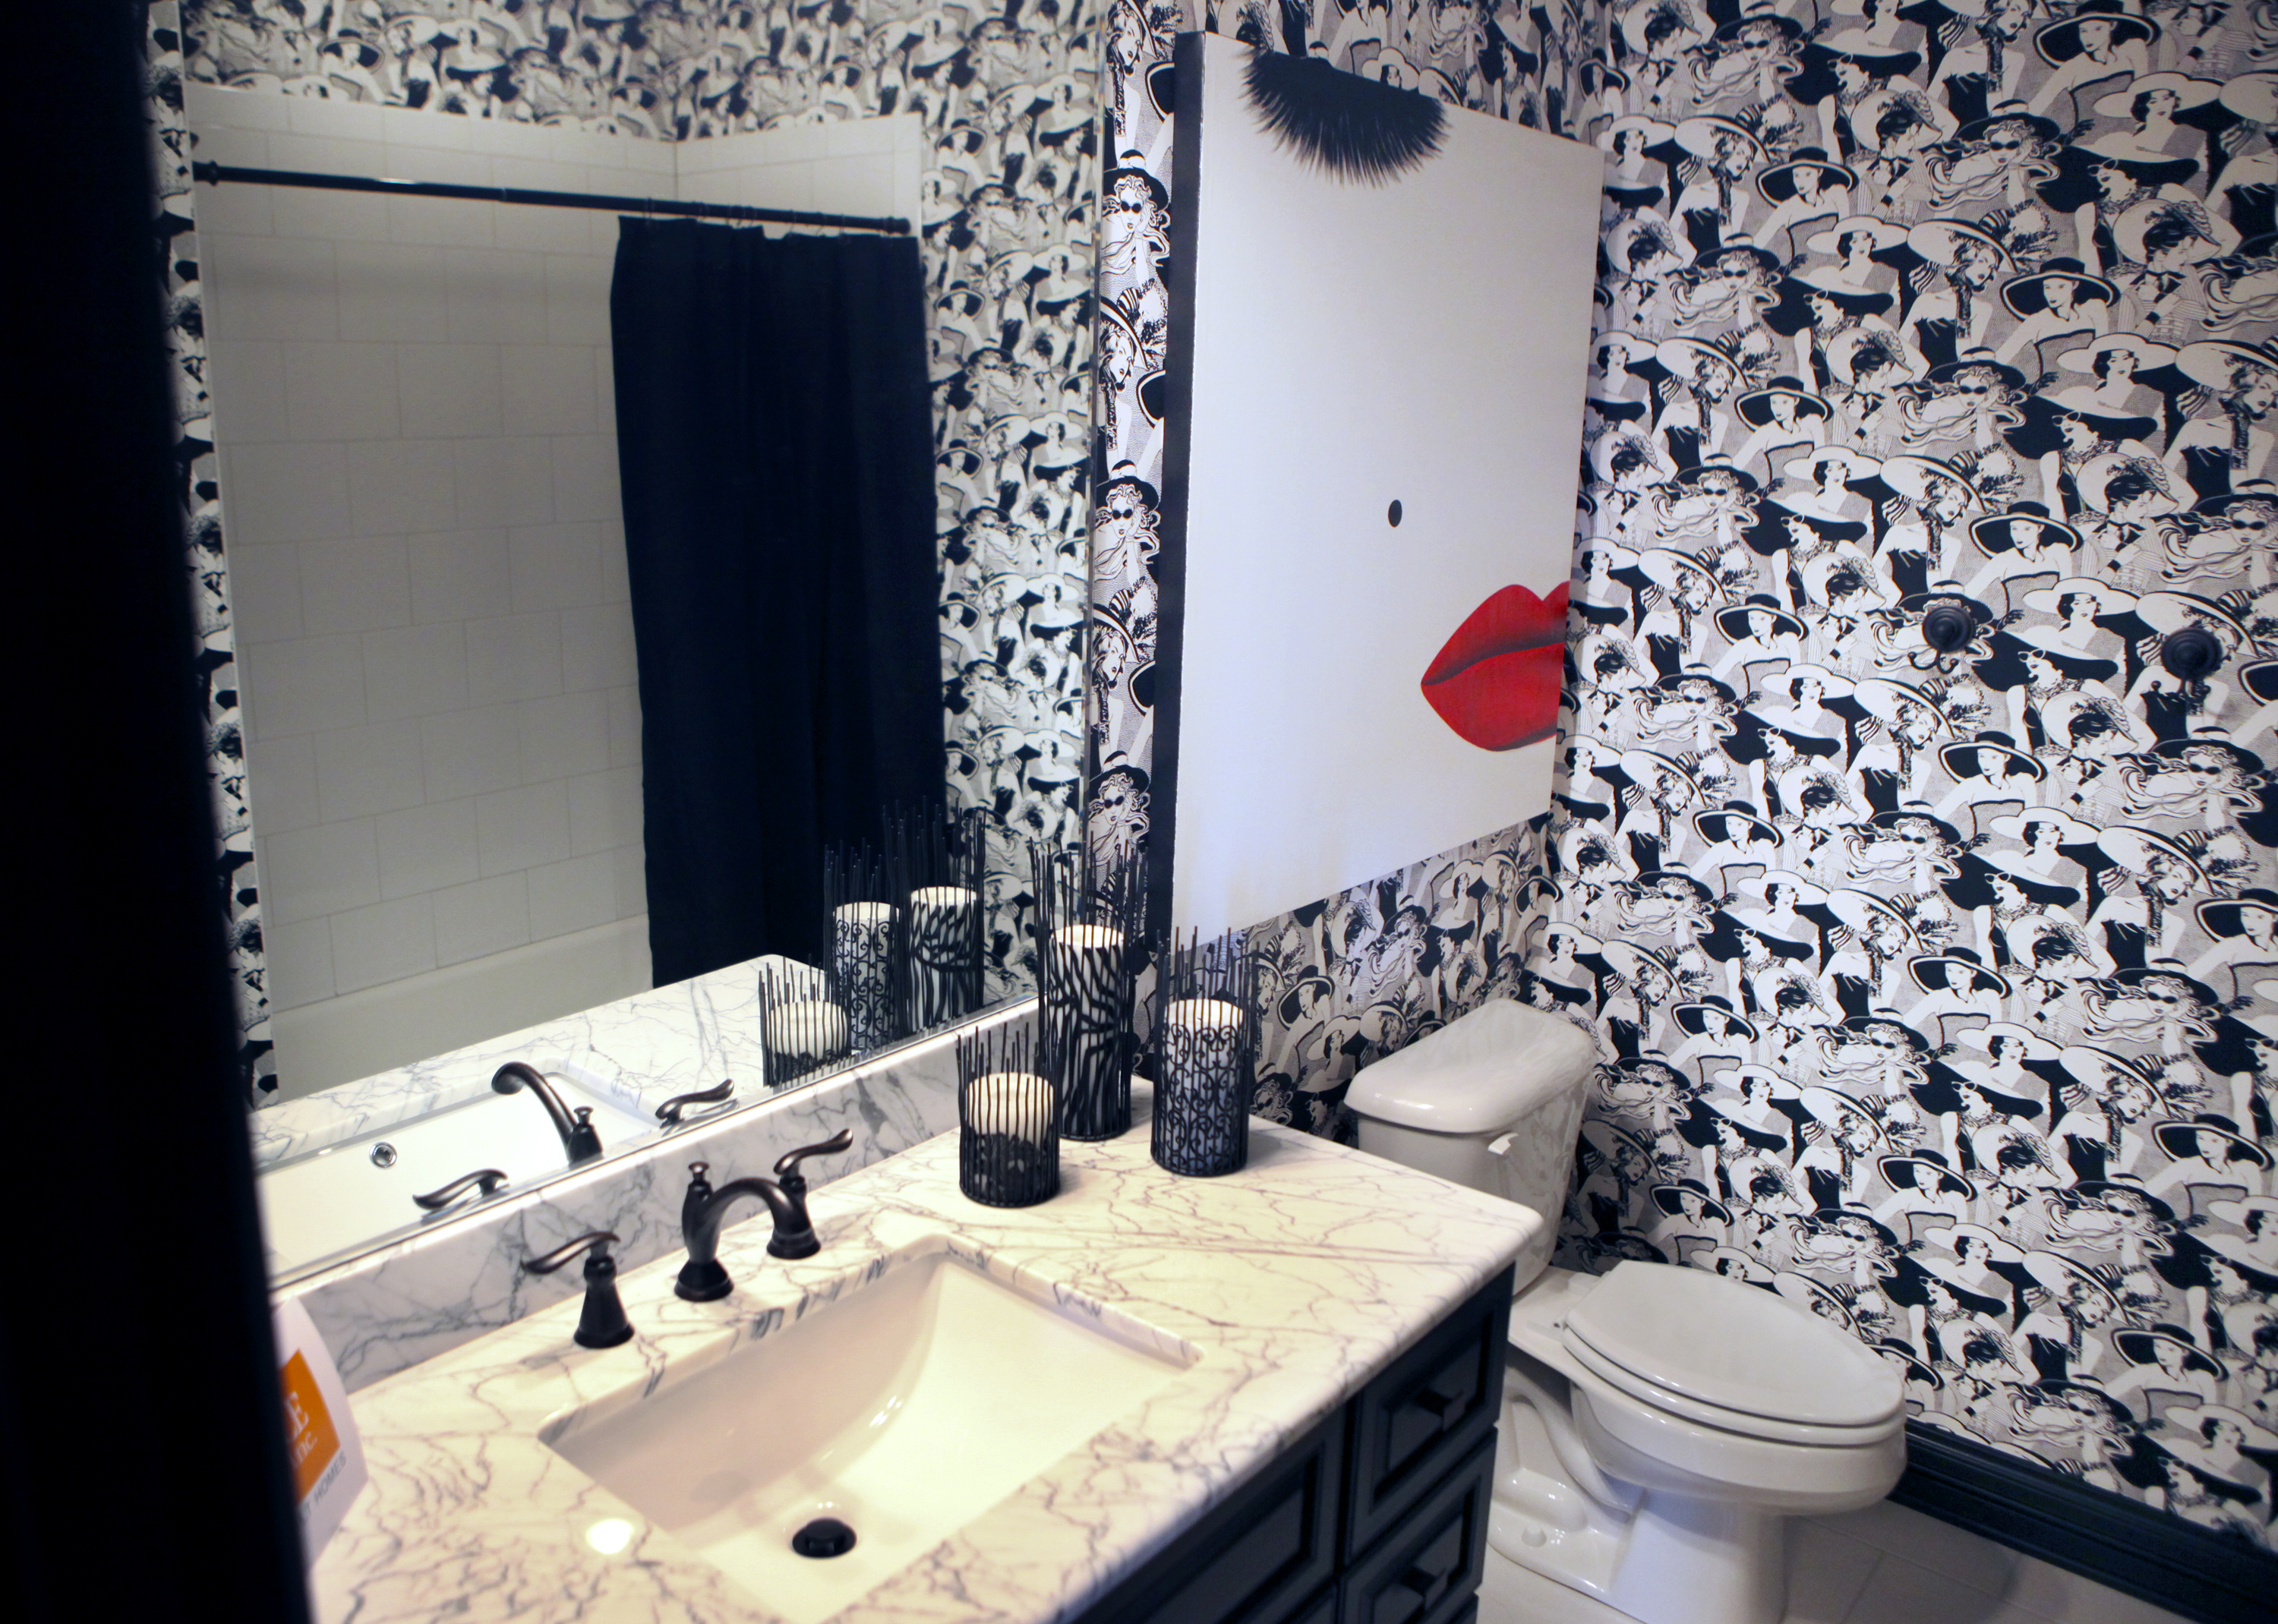 Marilyn Monroe Bathroom Decor And Products Black White Llds Home Interior Design